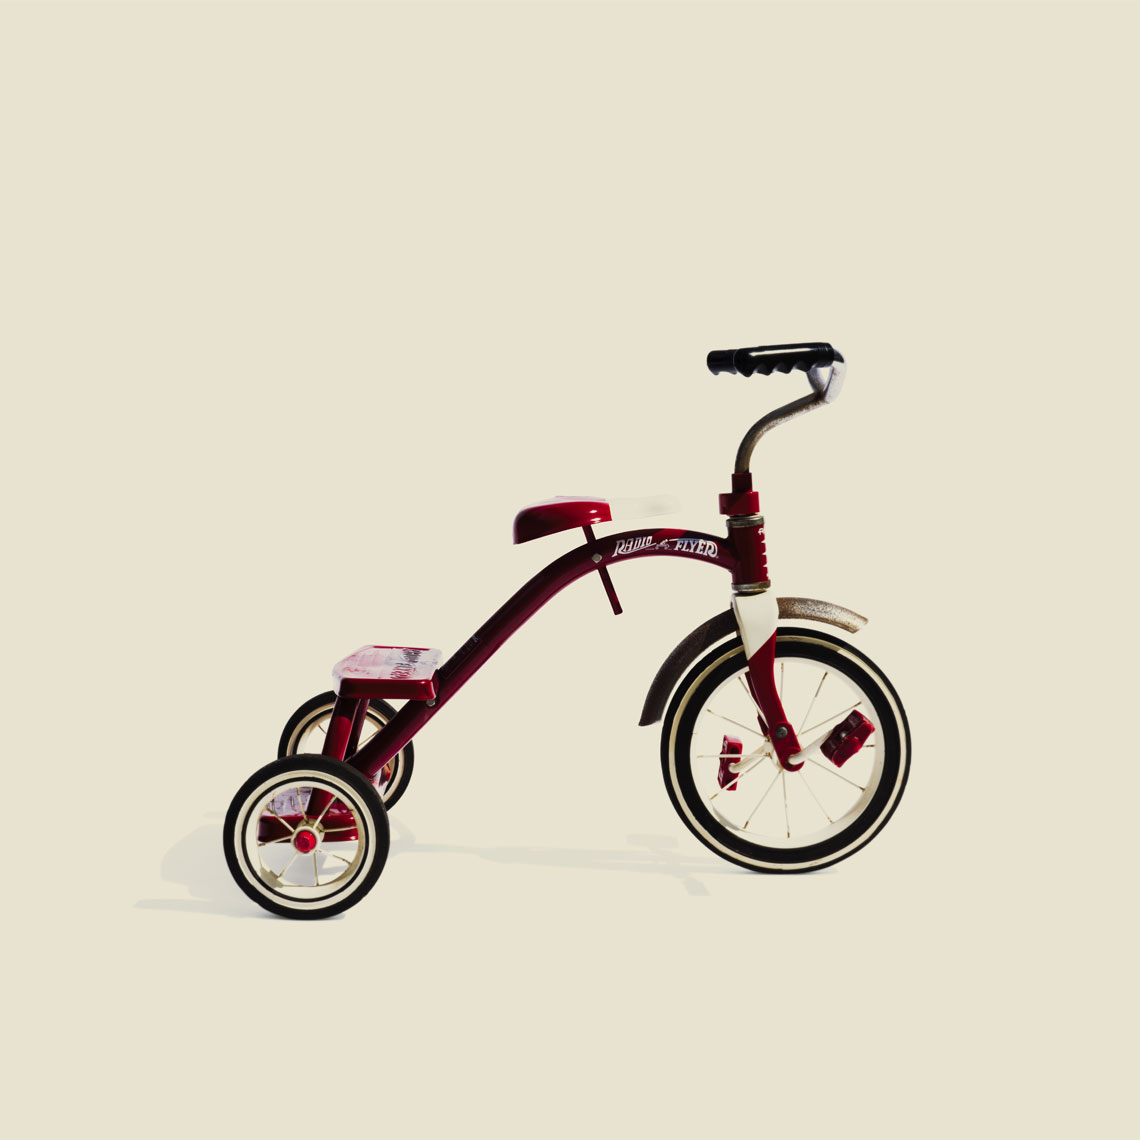 Still Life, Catalog, Editorial, Advertising and Corporate Studio Photography Jacksonville, Florida Conceptual Tricycle bike photo